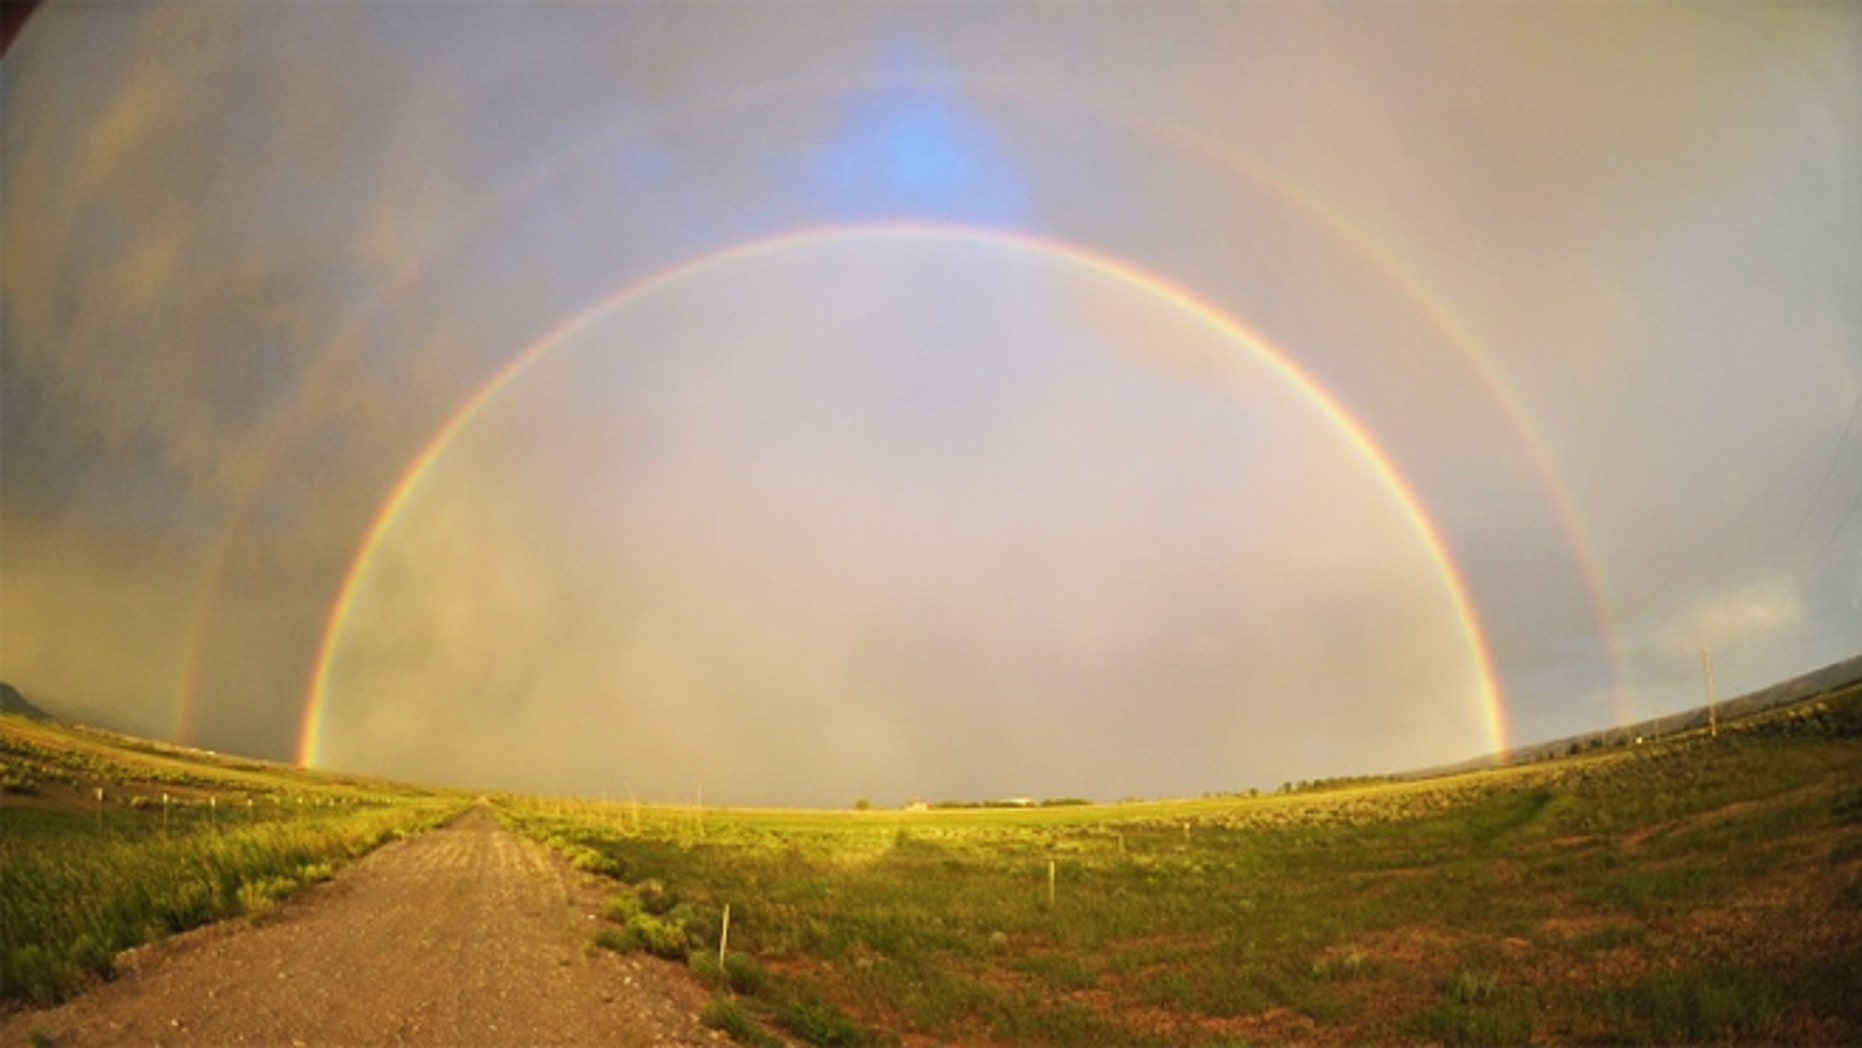 While on vacation on July 18, Texas native Jonathan Boening took this photograph of a double rainbow on a drive to Yellowstone National Park.